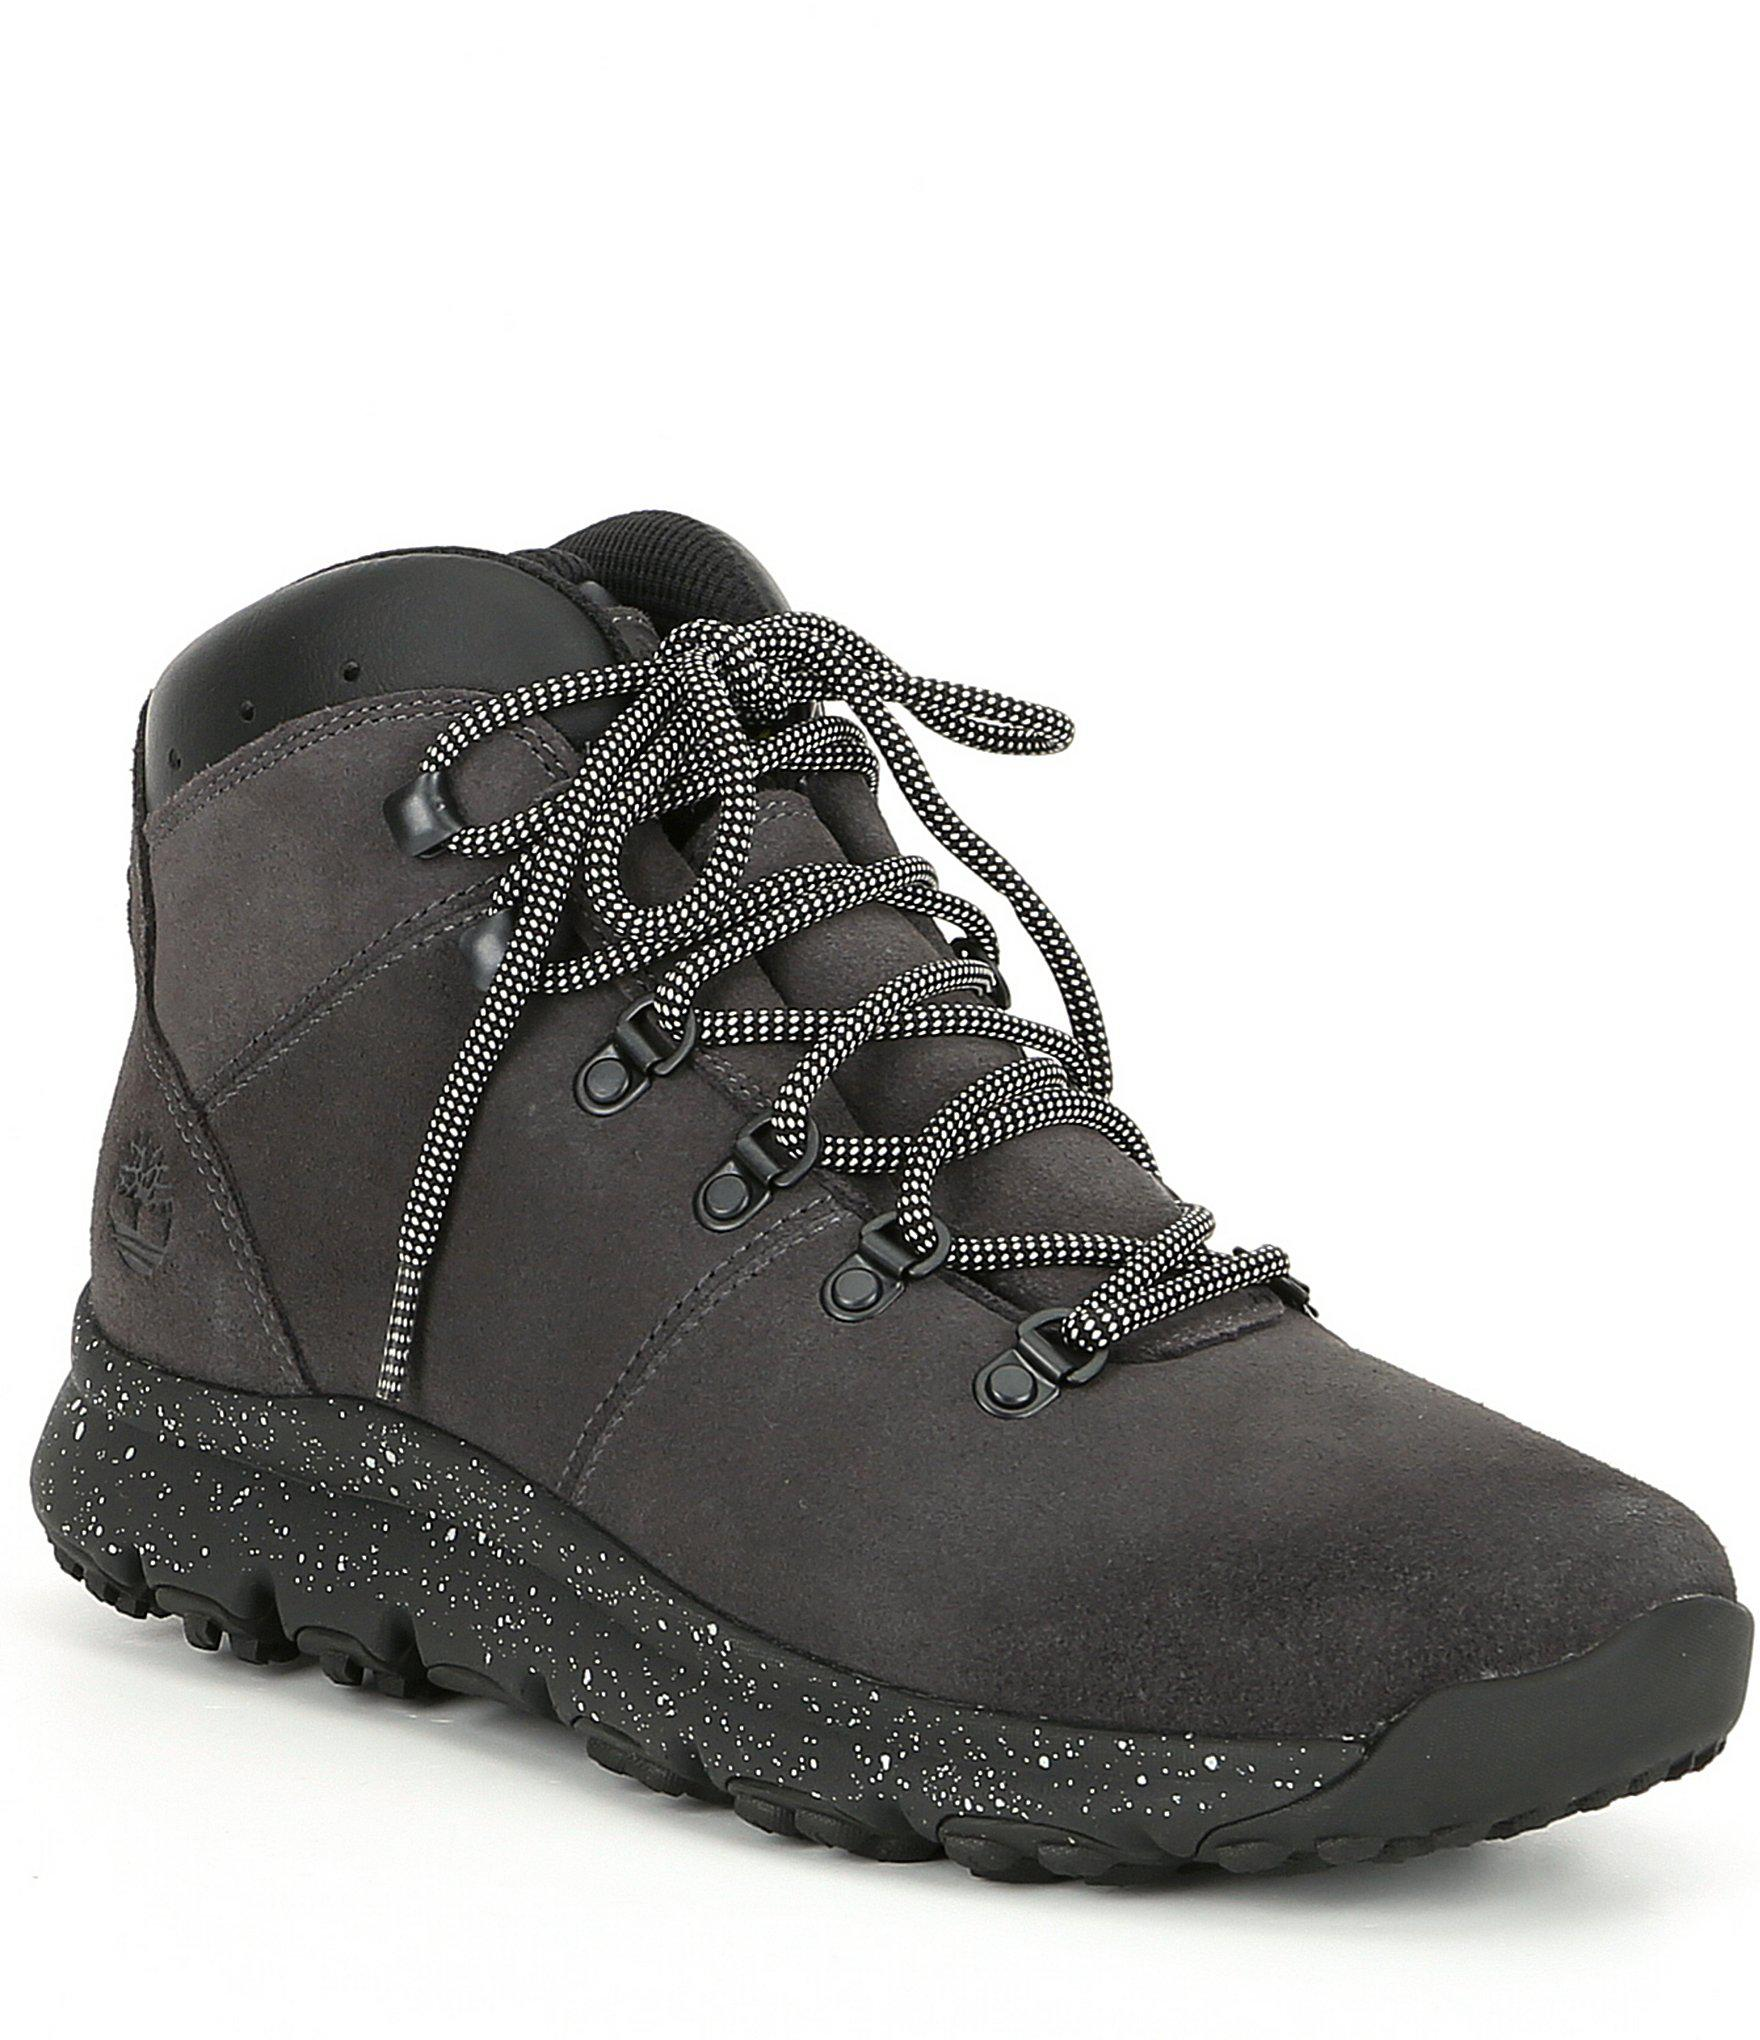 2abbd9396a5 Timberland Men s World Hiker Boots in Gray for Men - Lyst